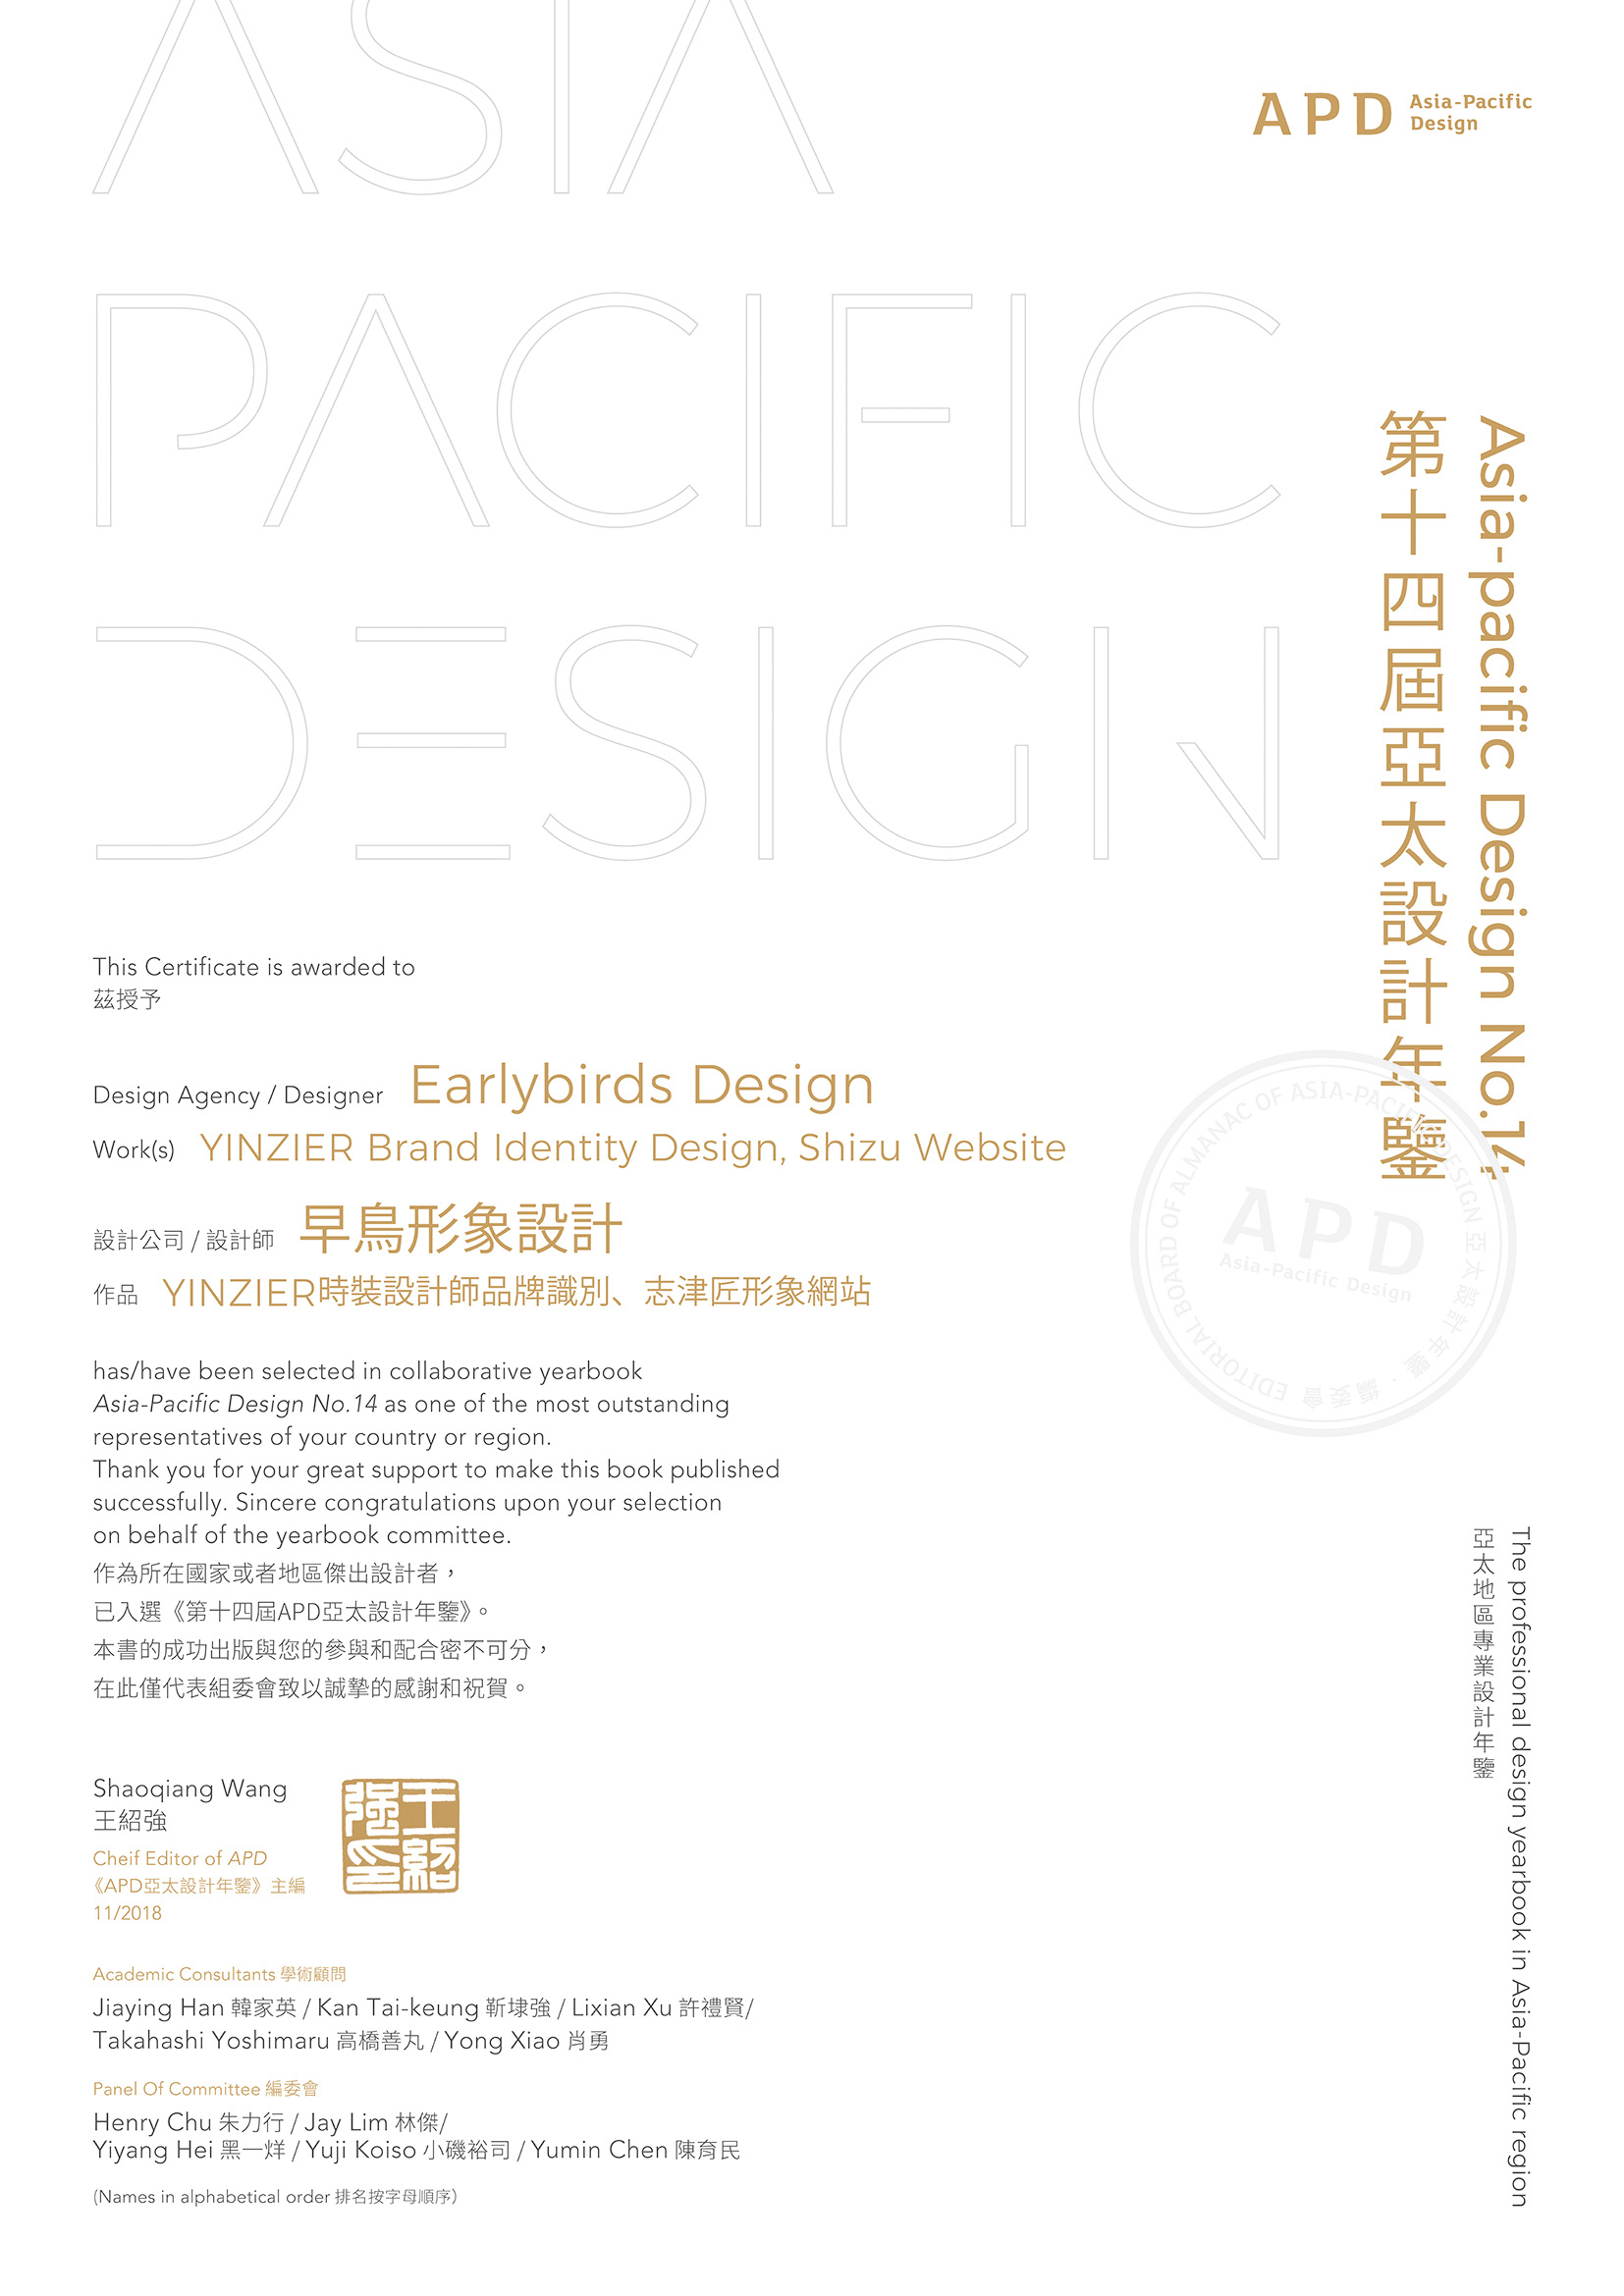 APD-14_cert_入选-Earlybirds Design 早鳥形象設計.jpg